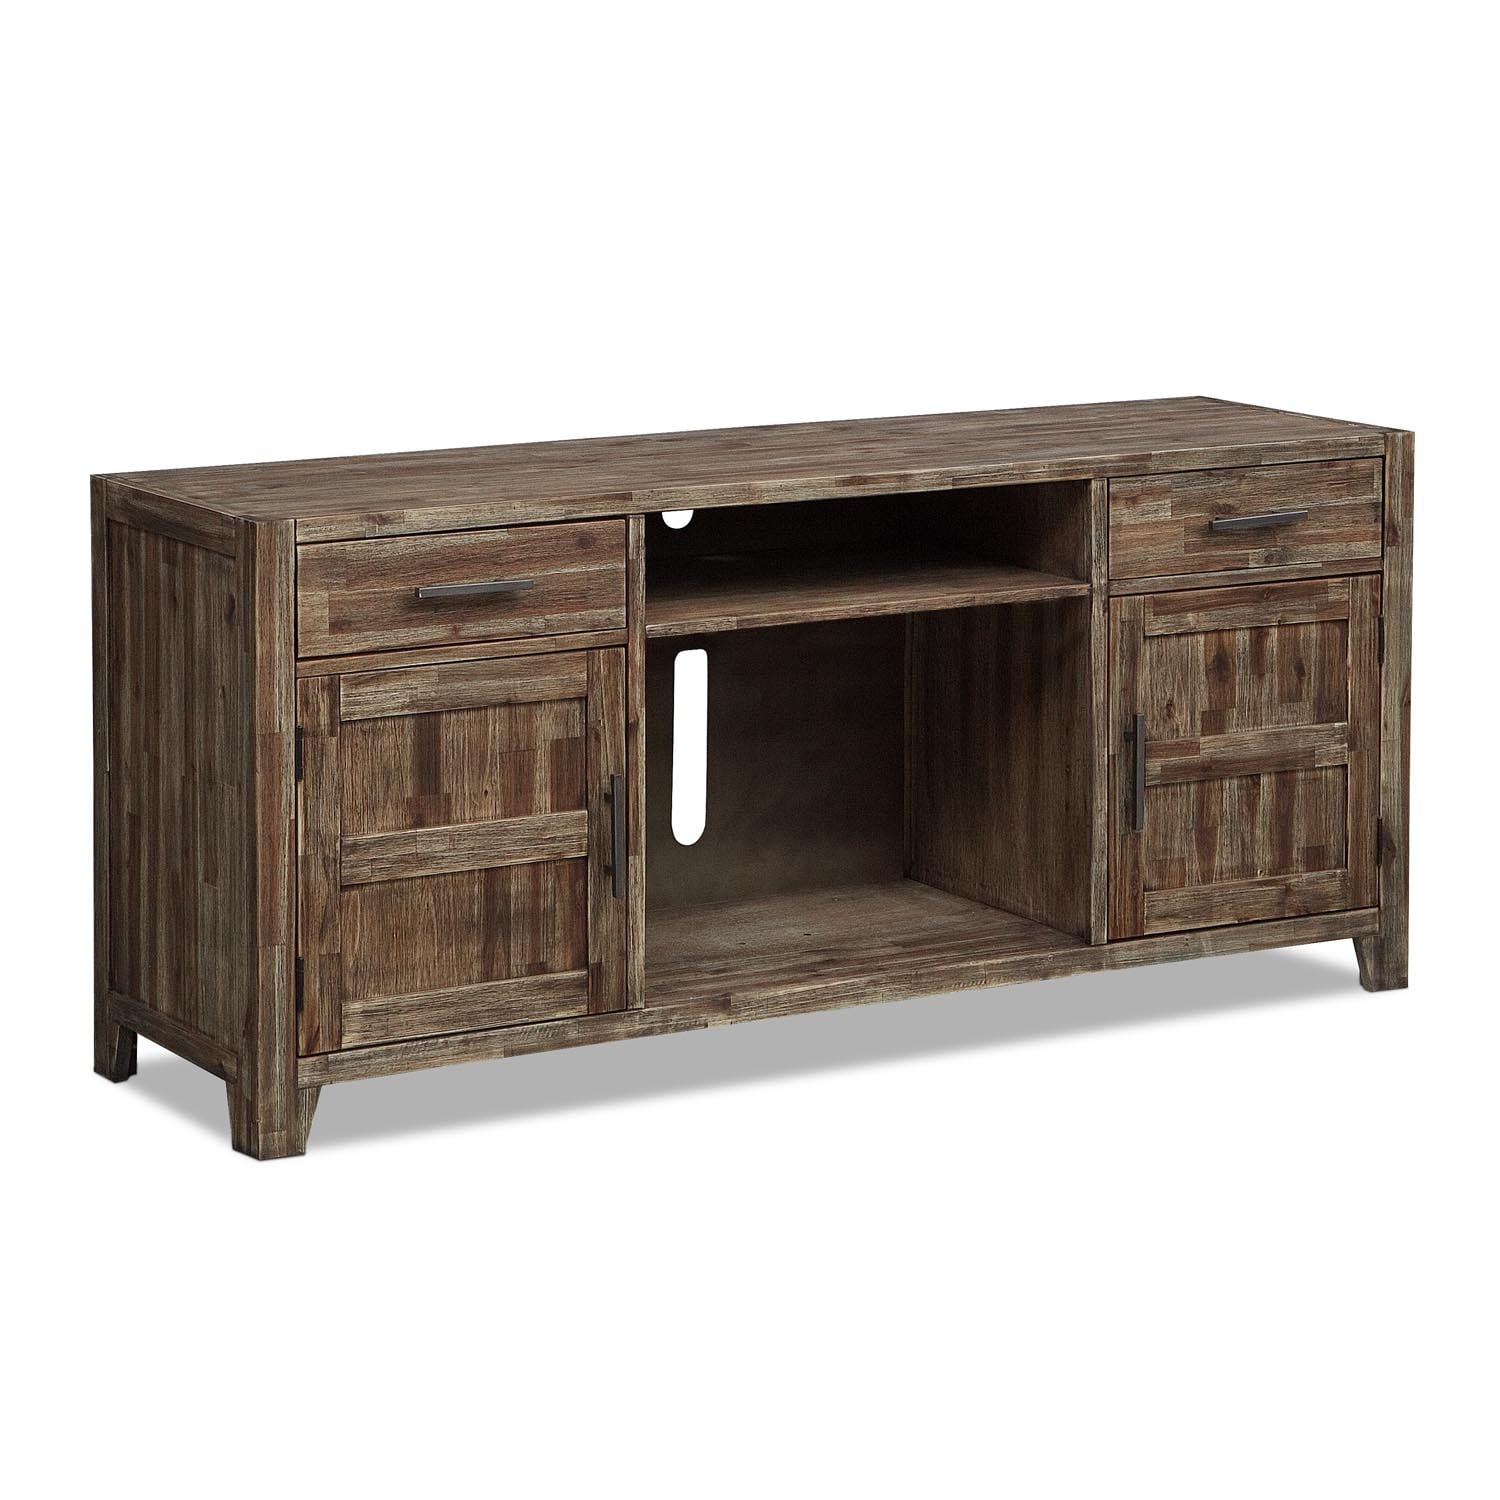 Brentwood TV Stand - Medium Brown